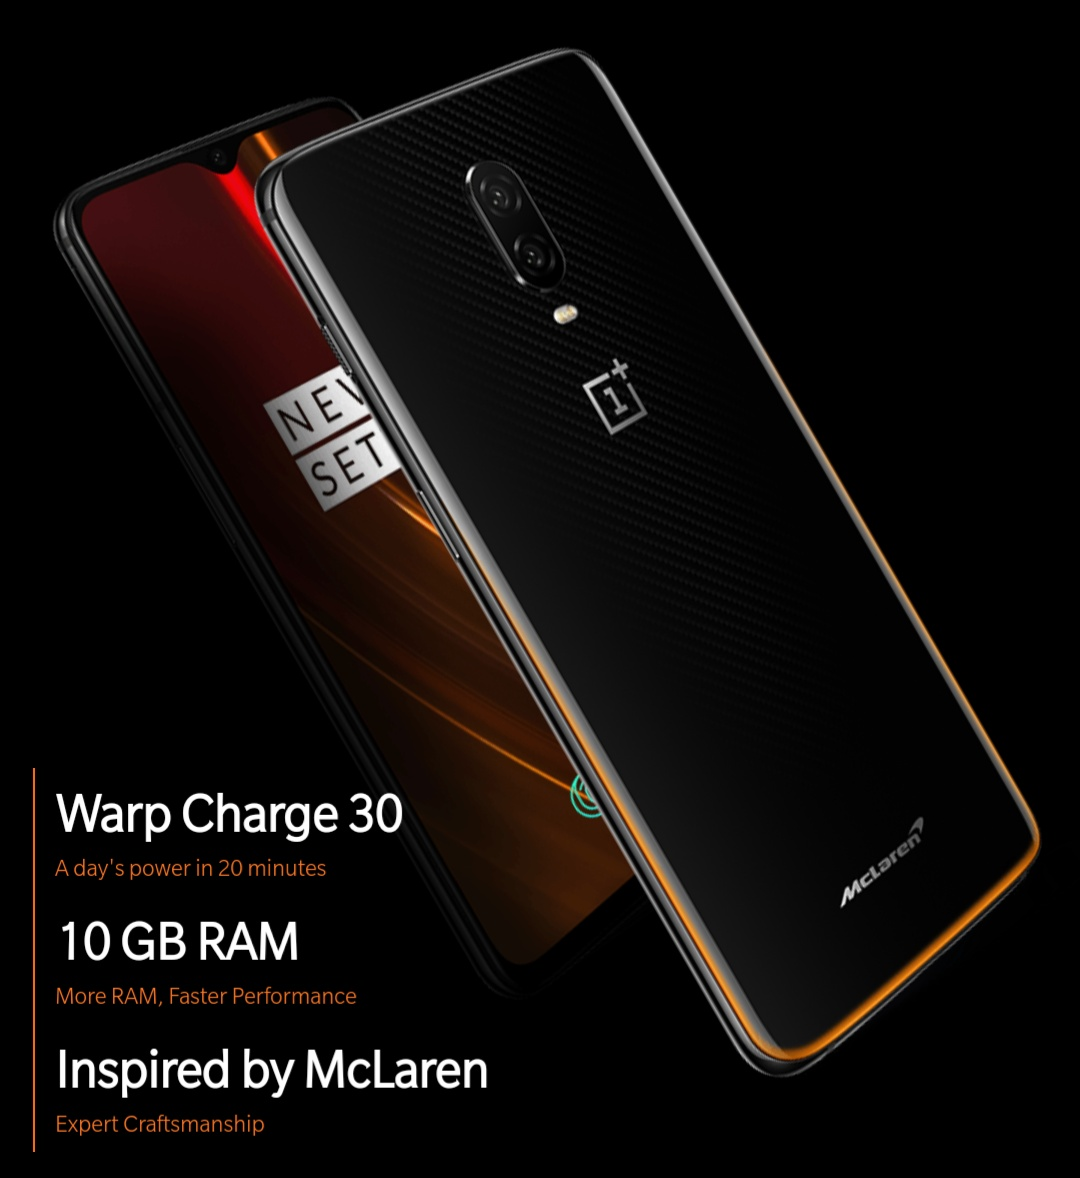 Oneplus 6t 6t Mclaren Edition Review: OnePlus 6T McLaren Edition Launched In India For Rs 50,999